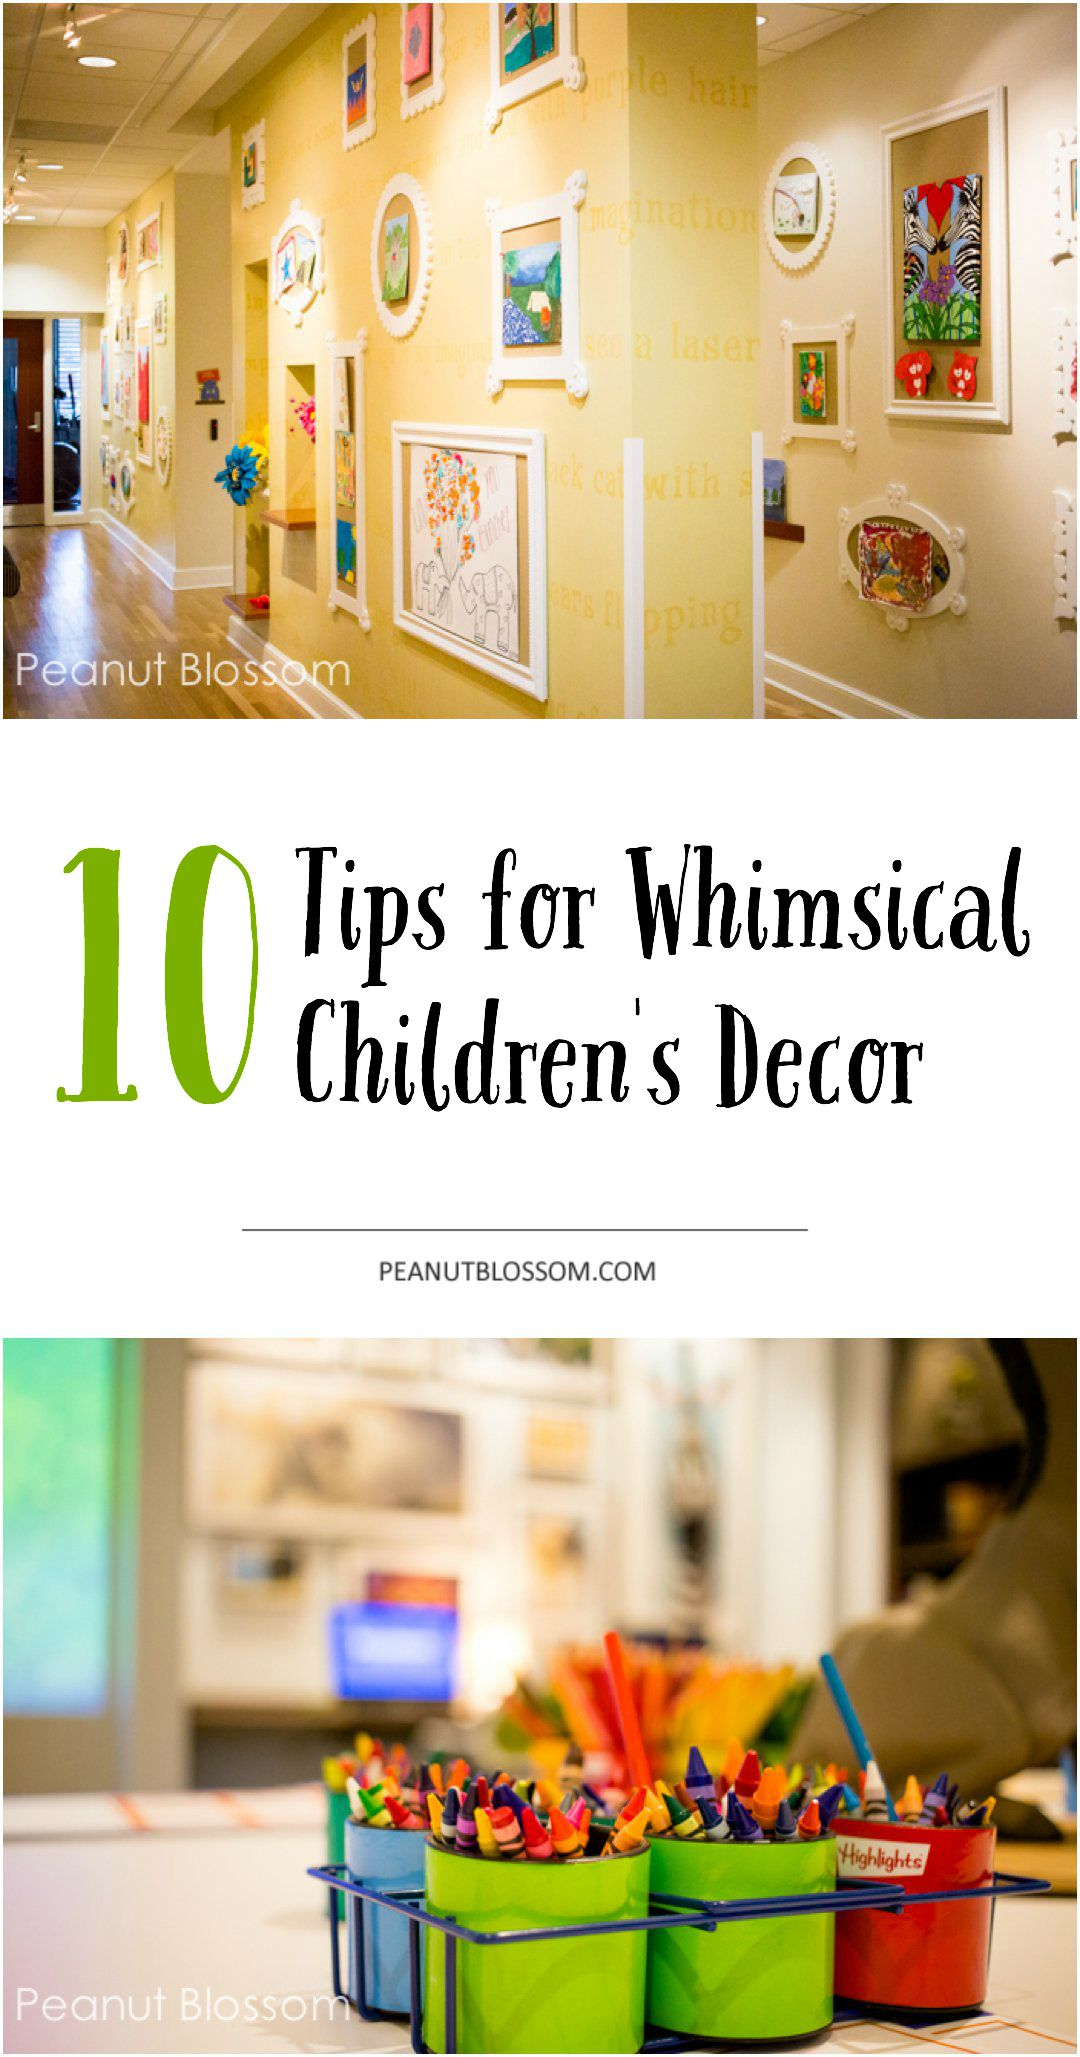 Astonishing Lunch Ideas For Kids At Home. 10 awesome ideas for kid friendly decor and making your home welcoming  the whole family